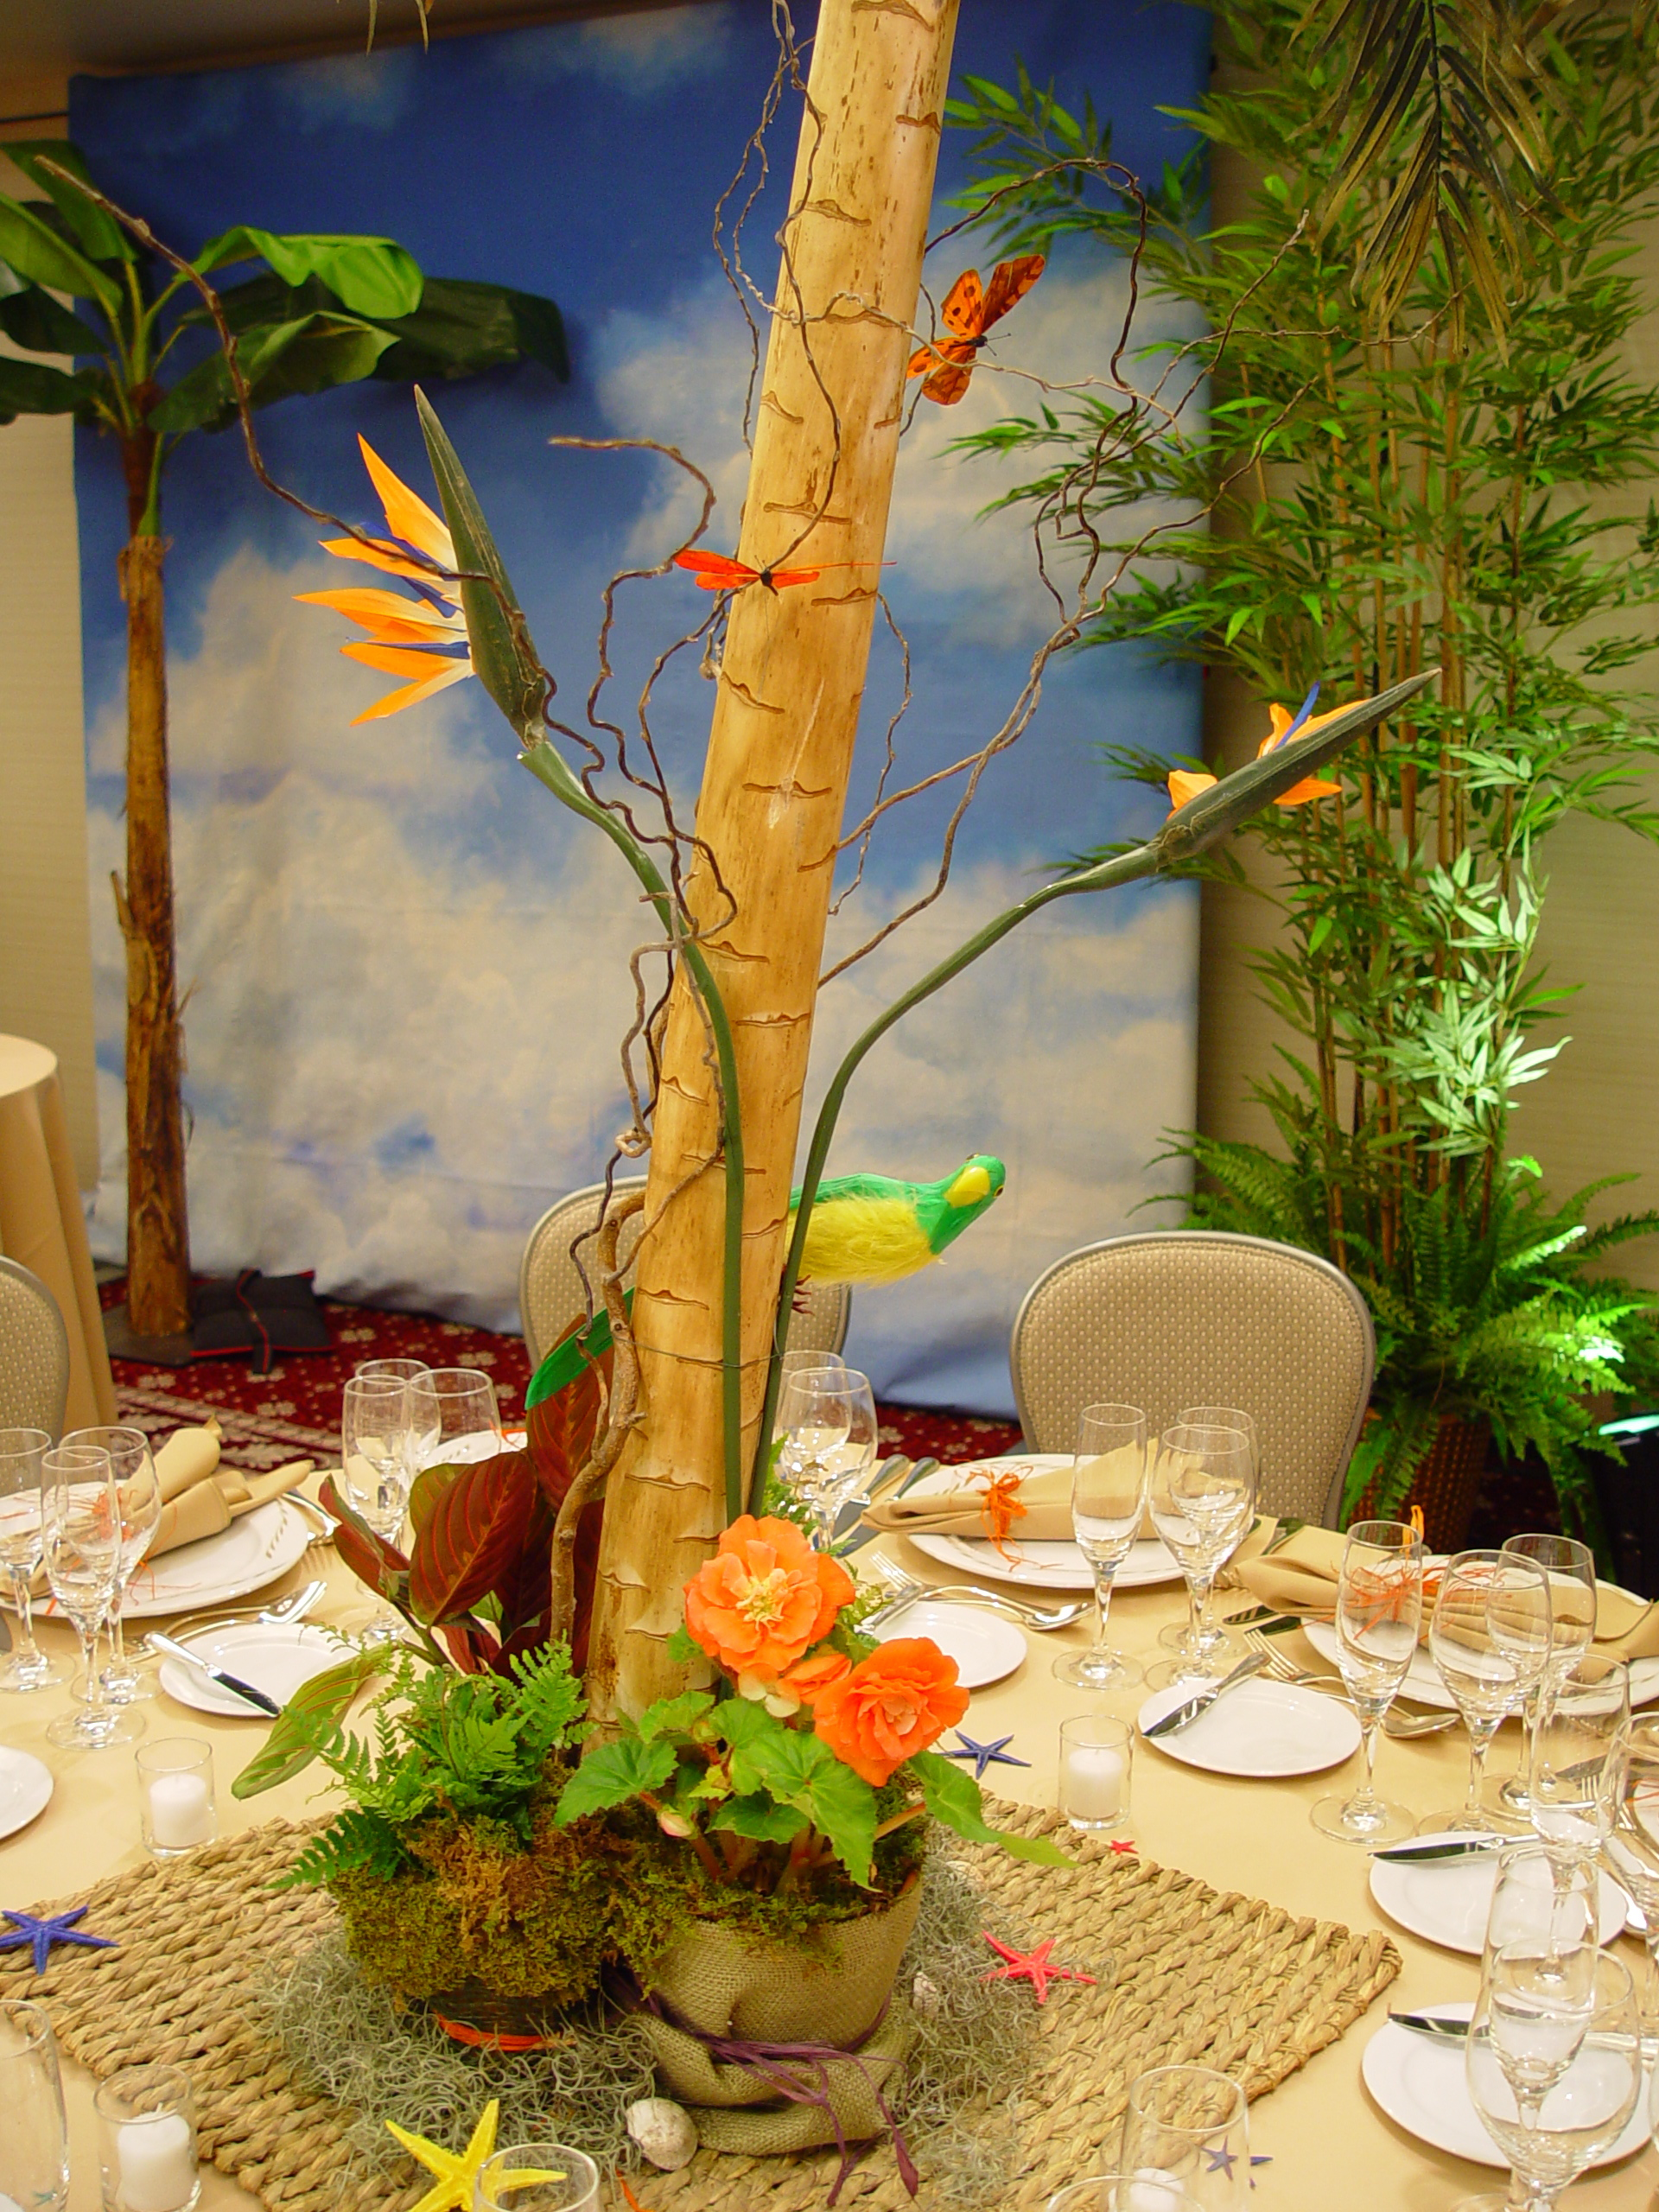 tropical+decor+centerpieces+props+rentals+tiki+for+rent+eggsotic+events+nj+ny+pa.jpg